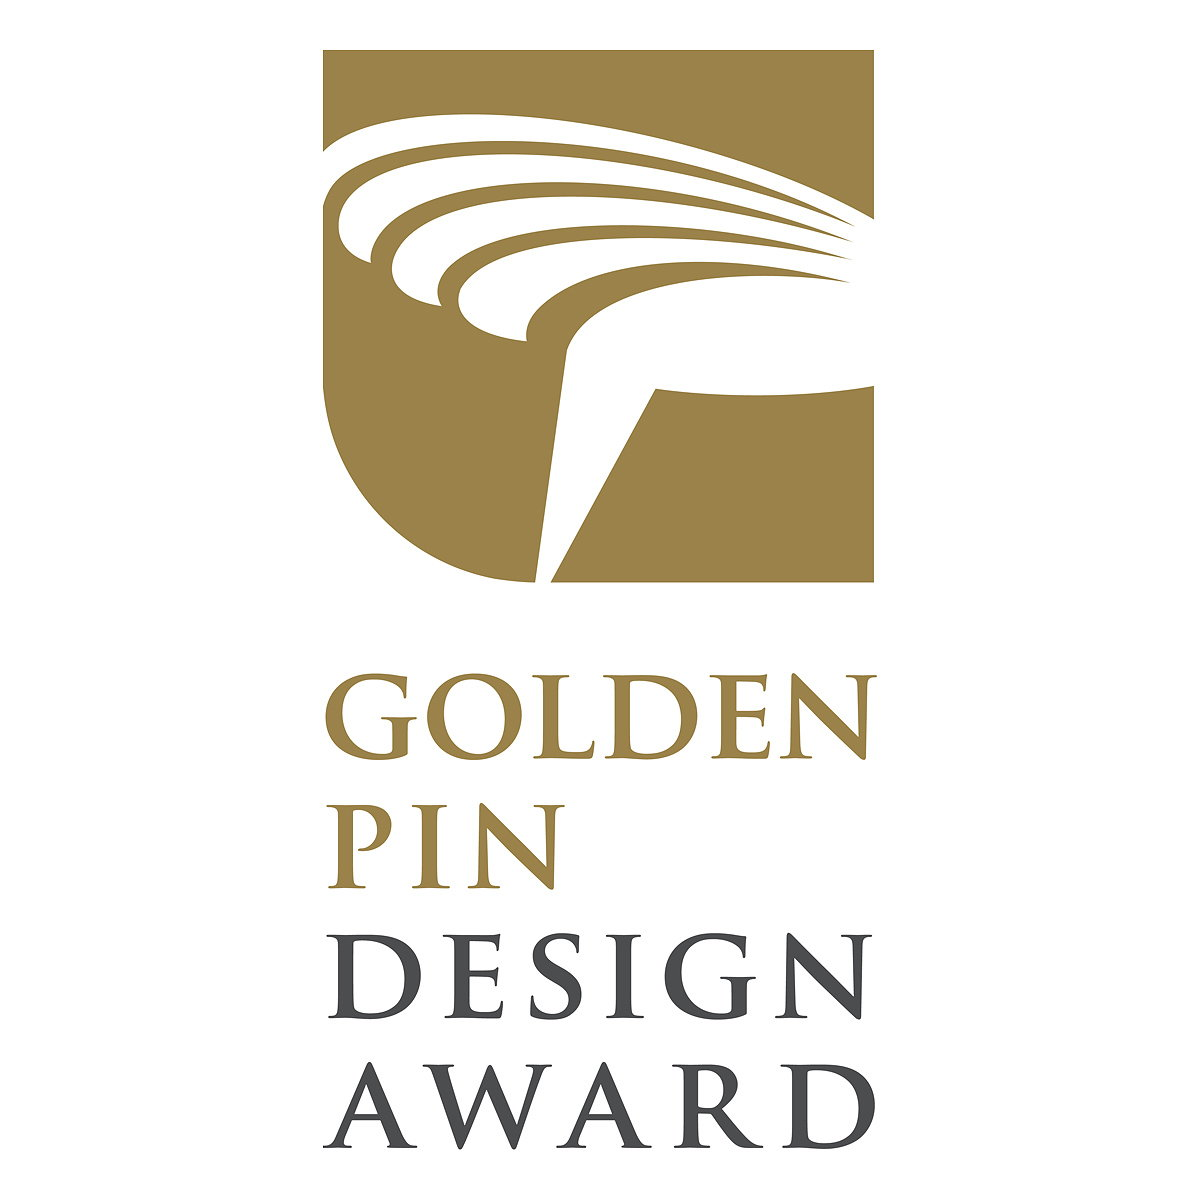 Golden Pin Design Award 2018 - Call for Entries